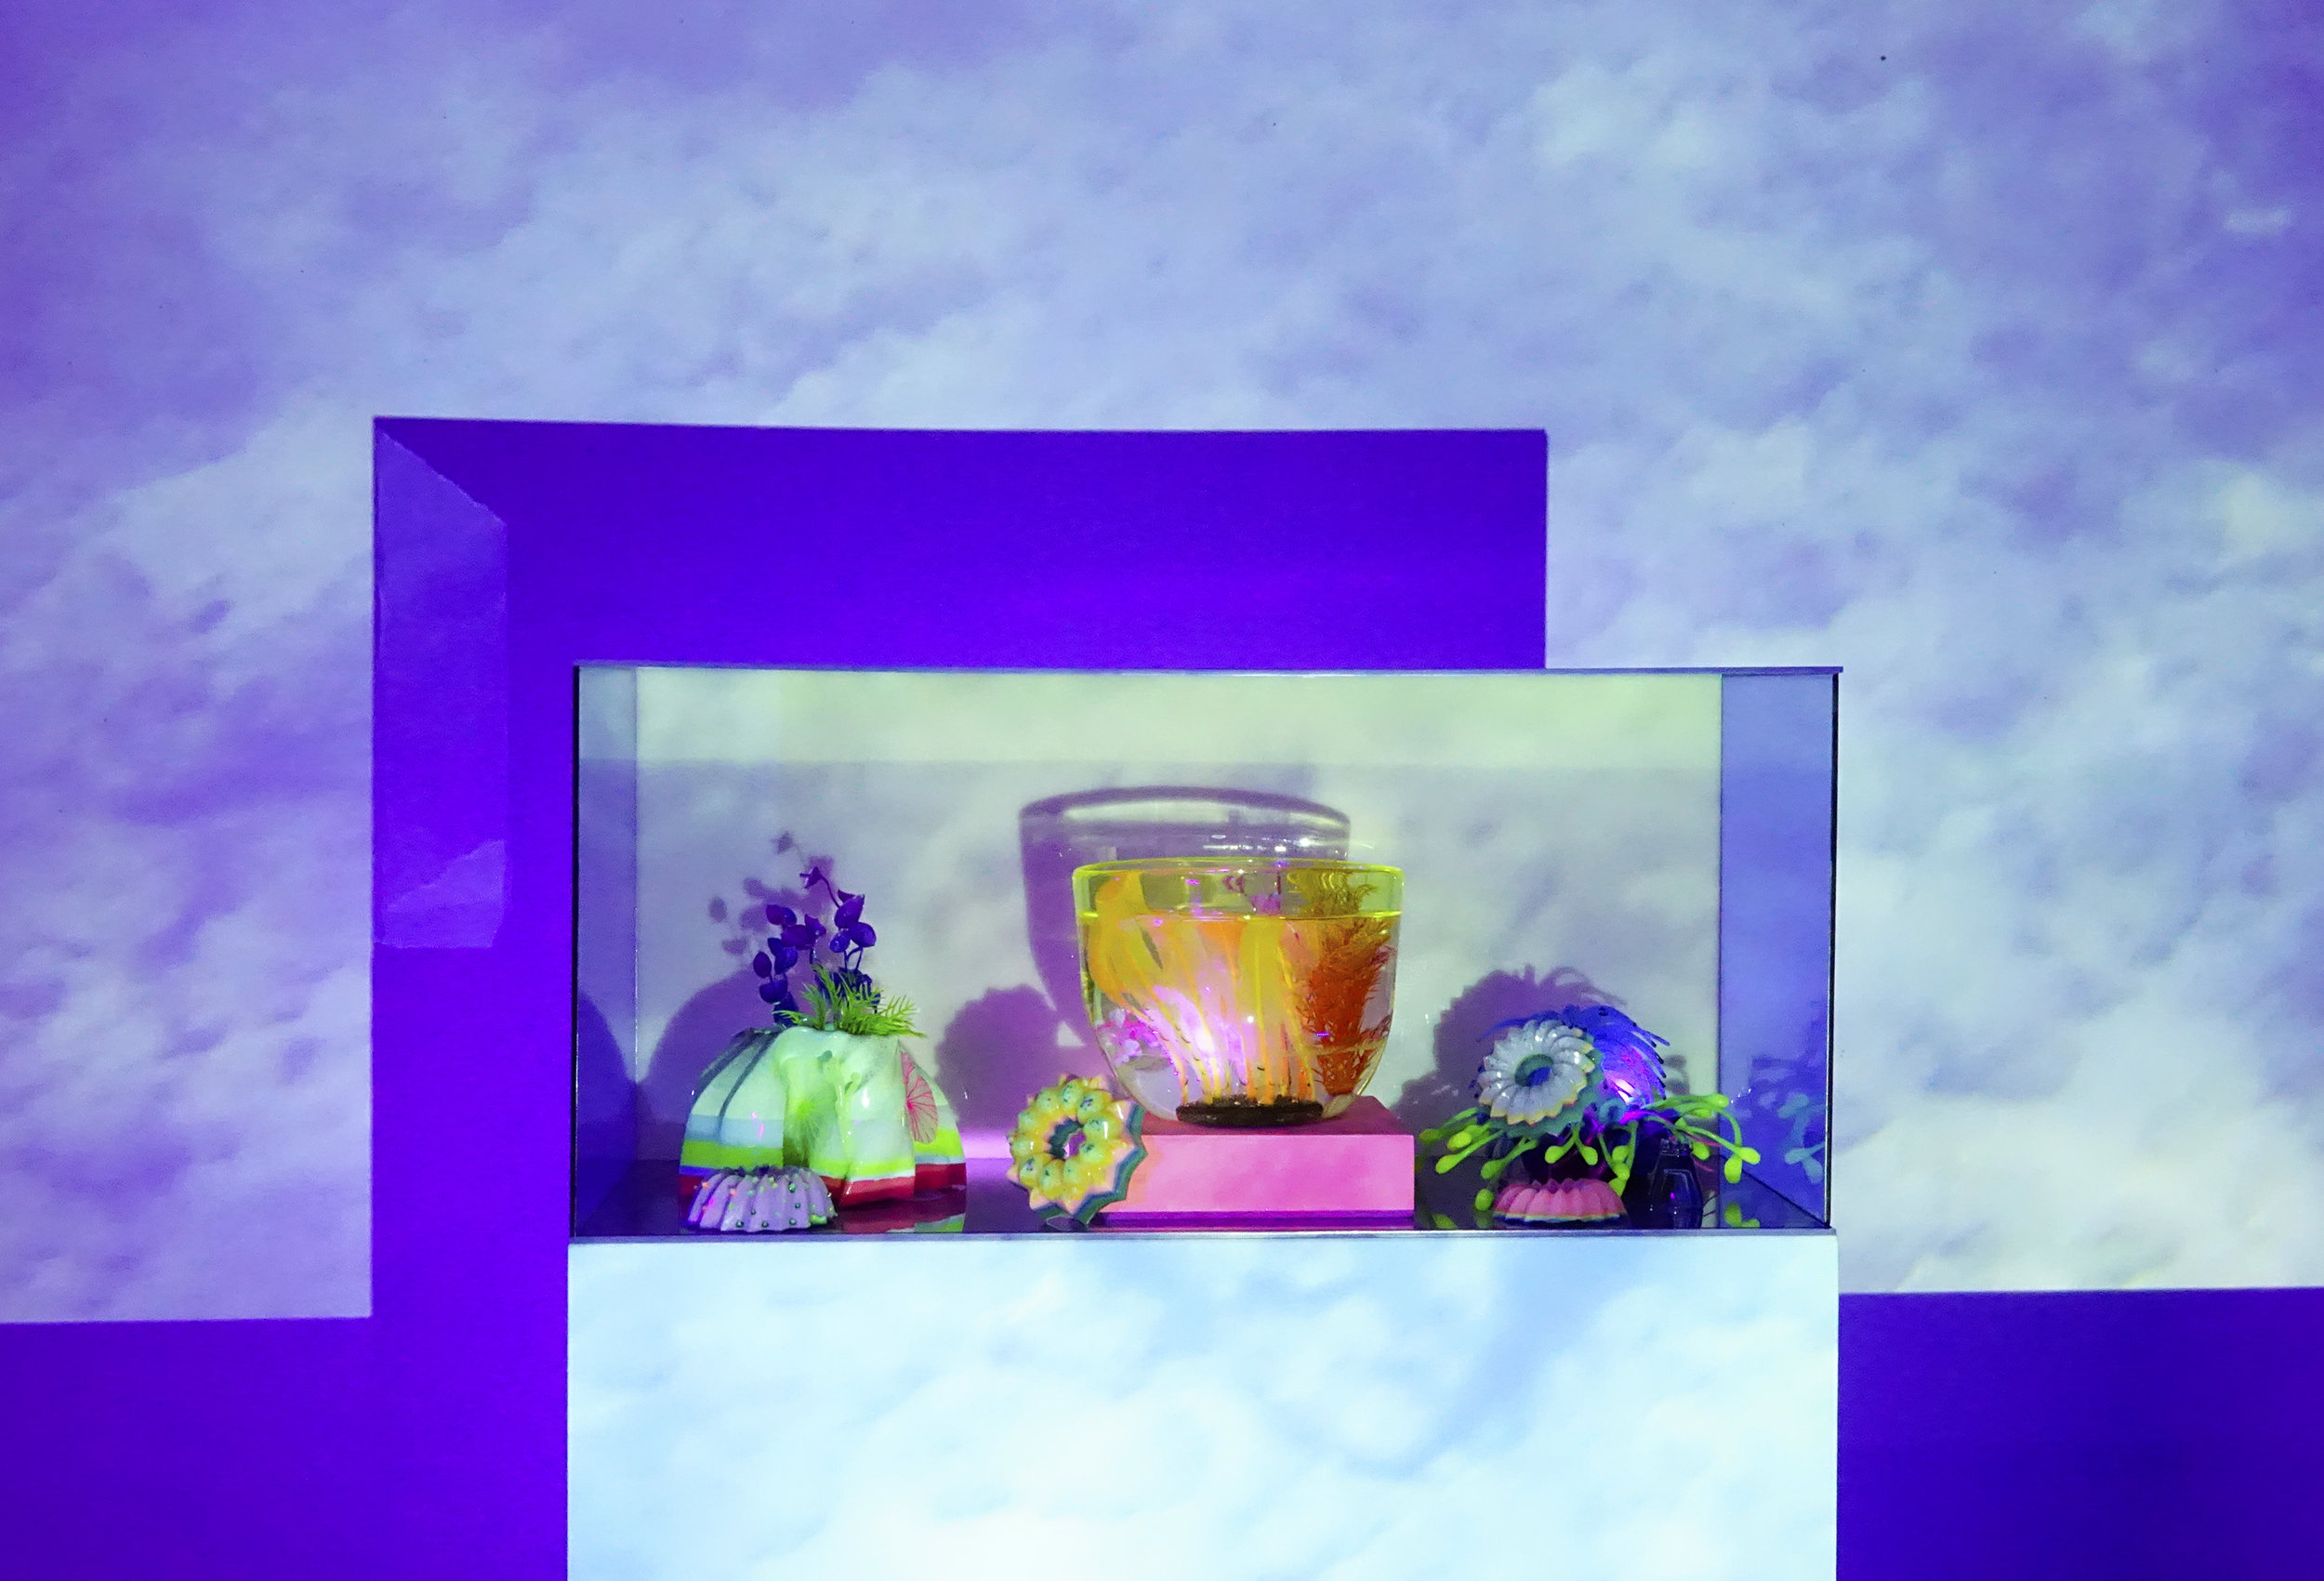 Lena+Daly+-+'Night+Dive,'+2019+-+Video+and+Ultrasound+projection,+UV‐reactive+paint,+wood+pedestals,+uranium+glass,+UV‐reactive+flock,+HD+projector,+HSS+speaker,+plexiglass,+and+LED+UV+light,+dimensions+variable+-+2.jpg